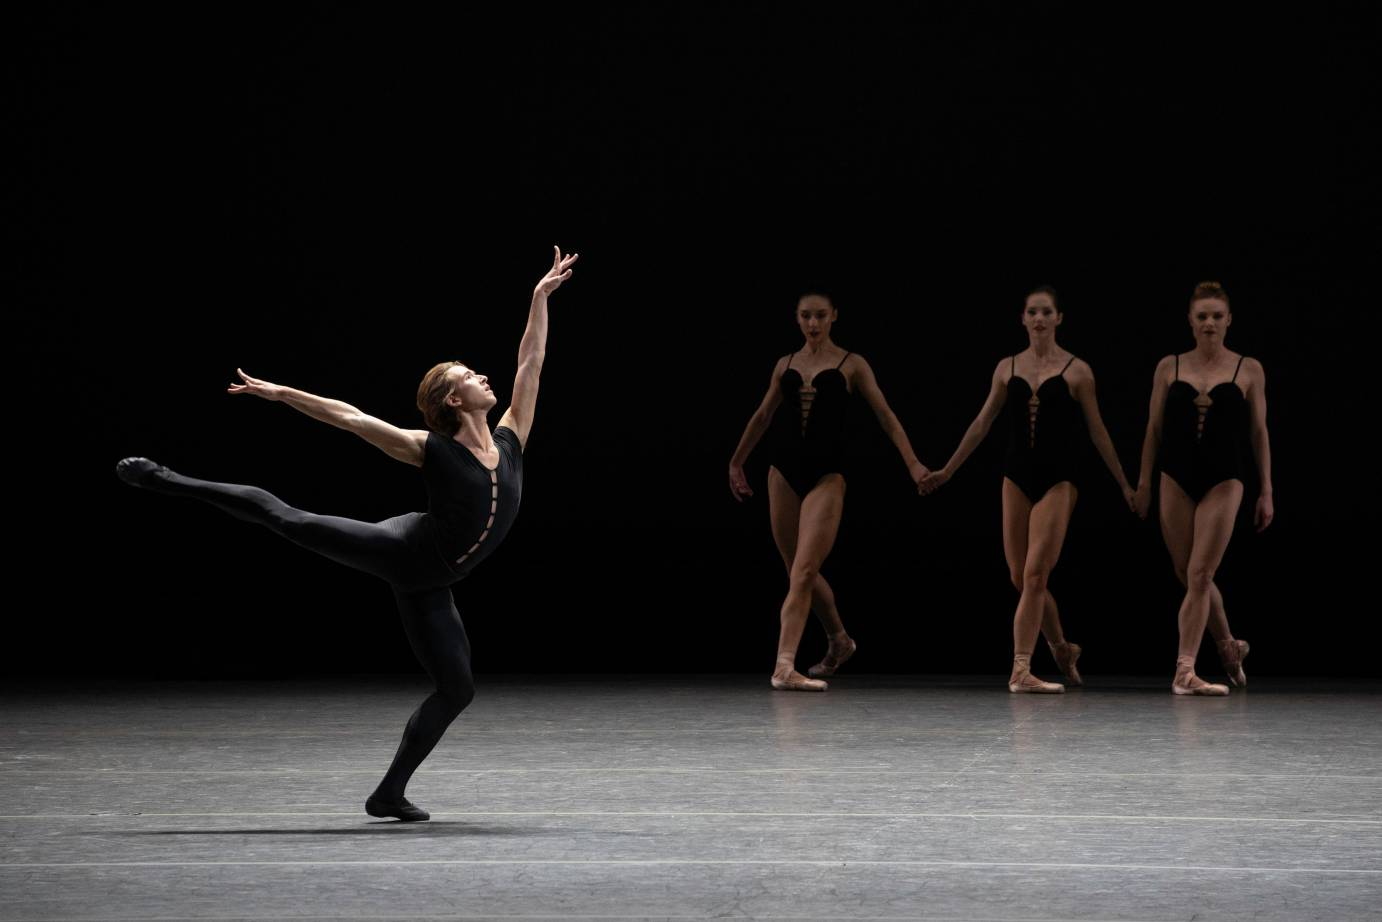 A man in amplified arabesque is in front of three women